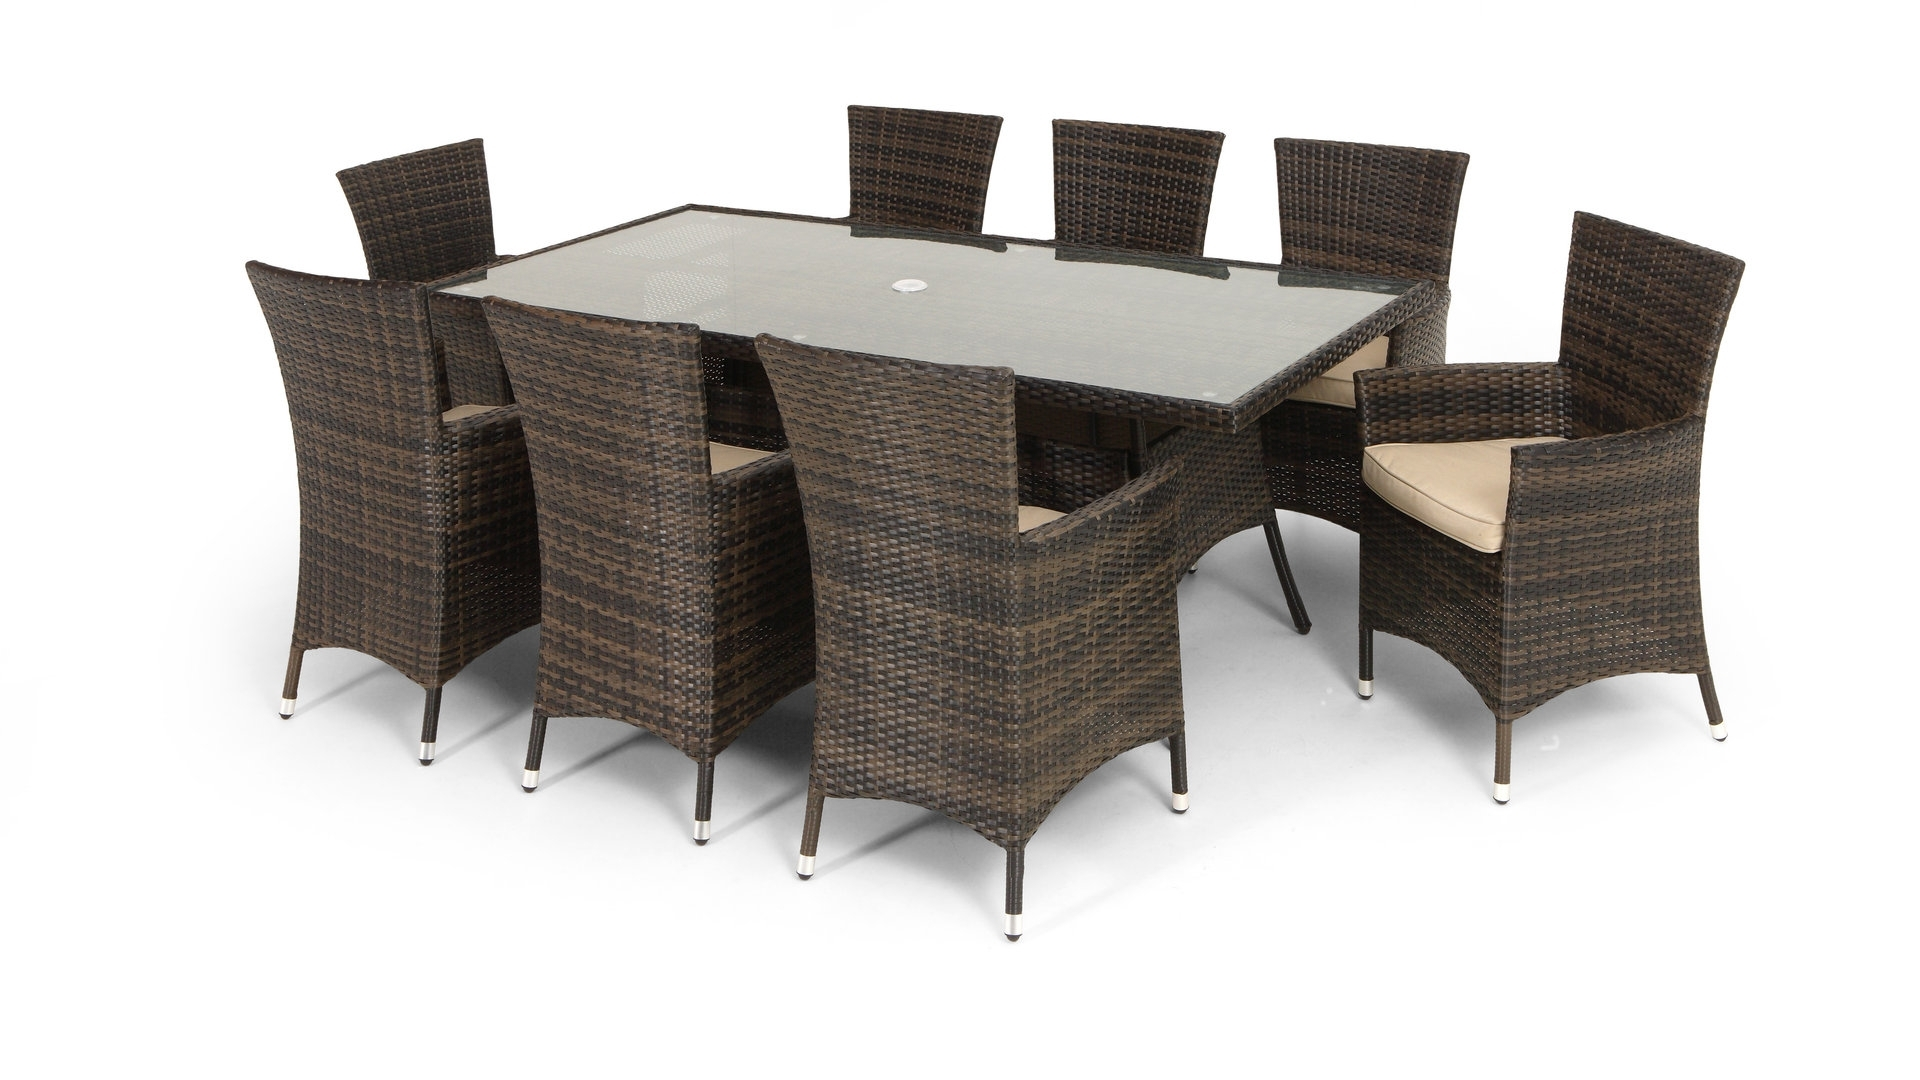 Fashionable Wicker Dining Table Set – Castrophotos Pertaining To Rattan Dining Tables And Chairs (View 9 of 25)